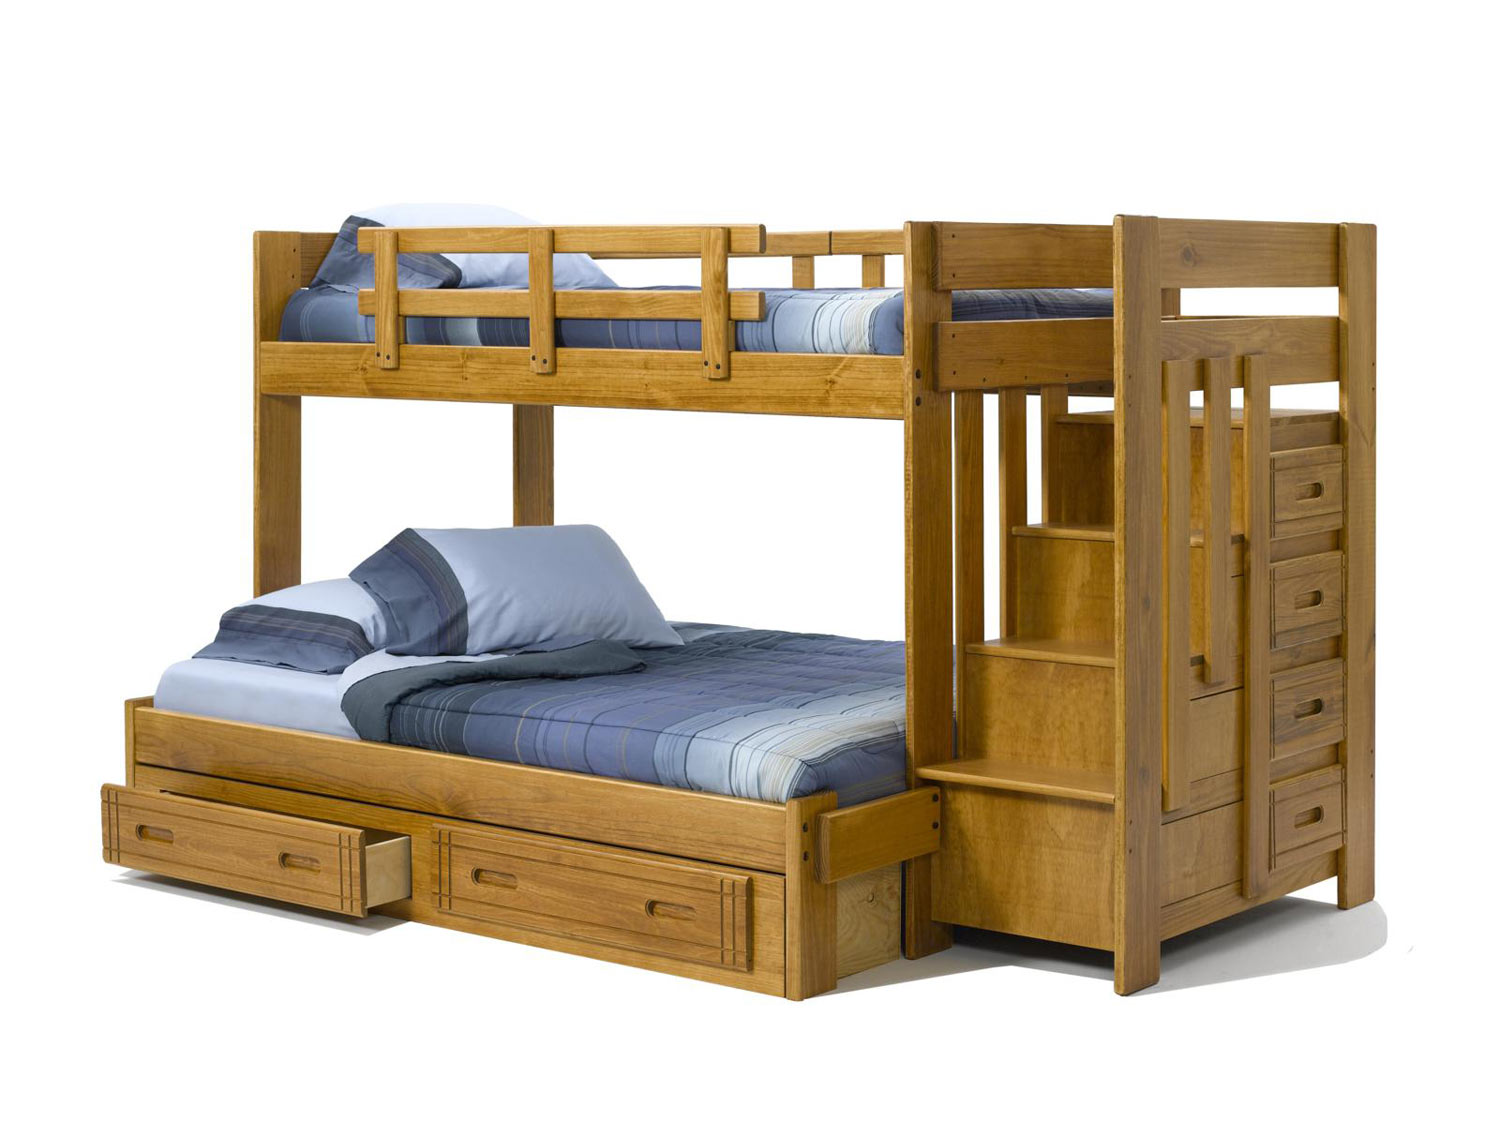 Chelsea Home 36154W-S Twin Over Full Bunk Bed with Stairway Chest and Underbed Storage - Honey